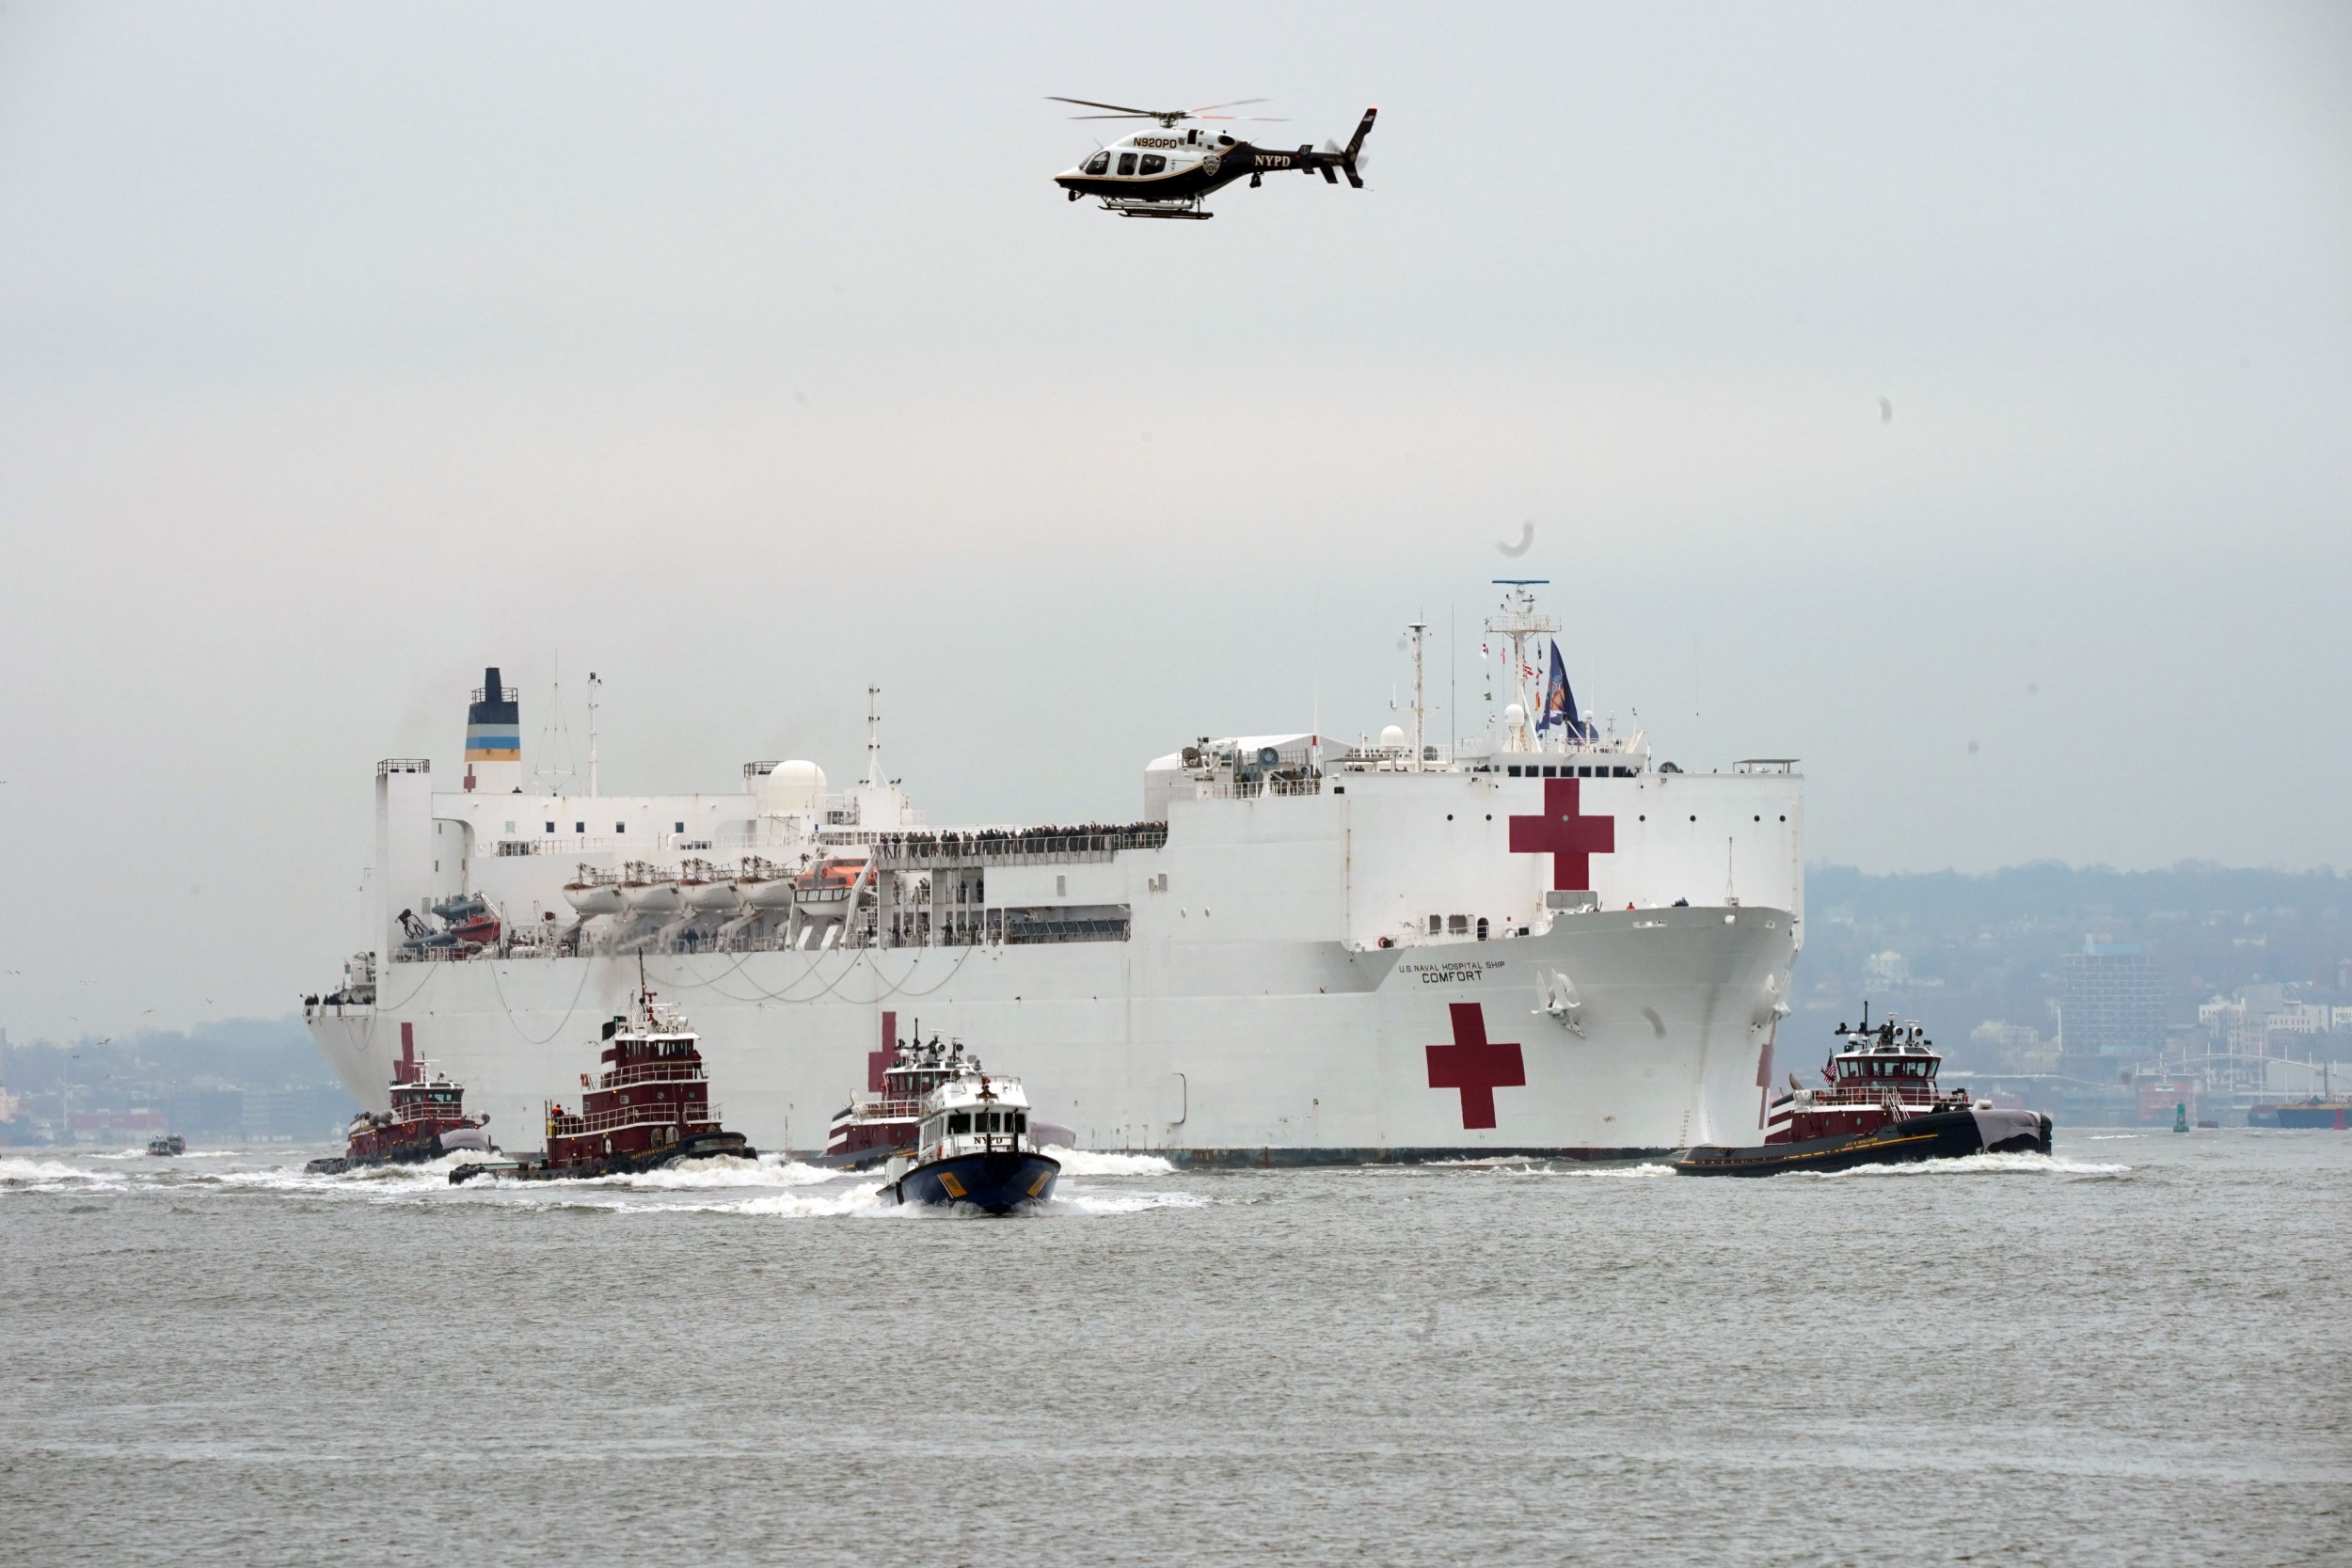 Crowds Gather to See Navy Hospital Ship Dock in NYC Amid COVID-19 Pandemic - Newsweek